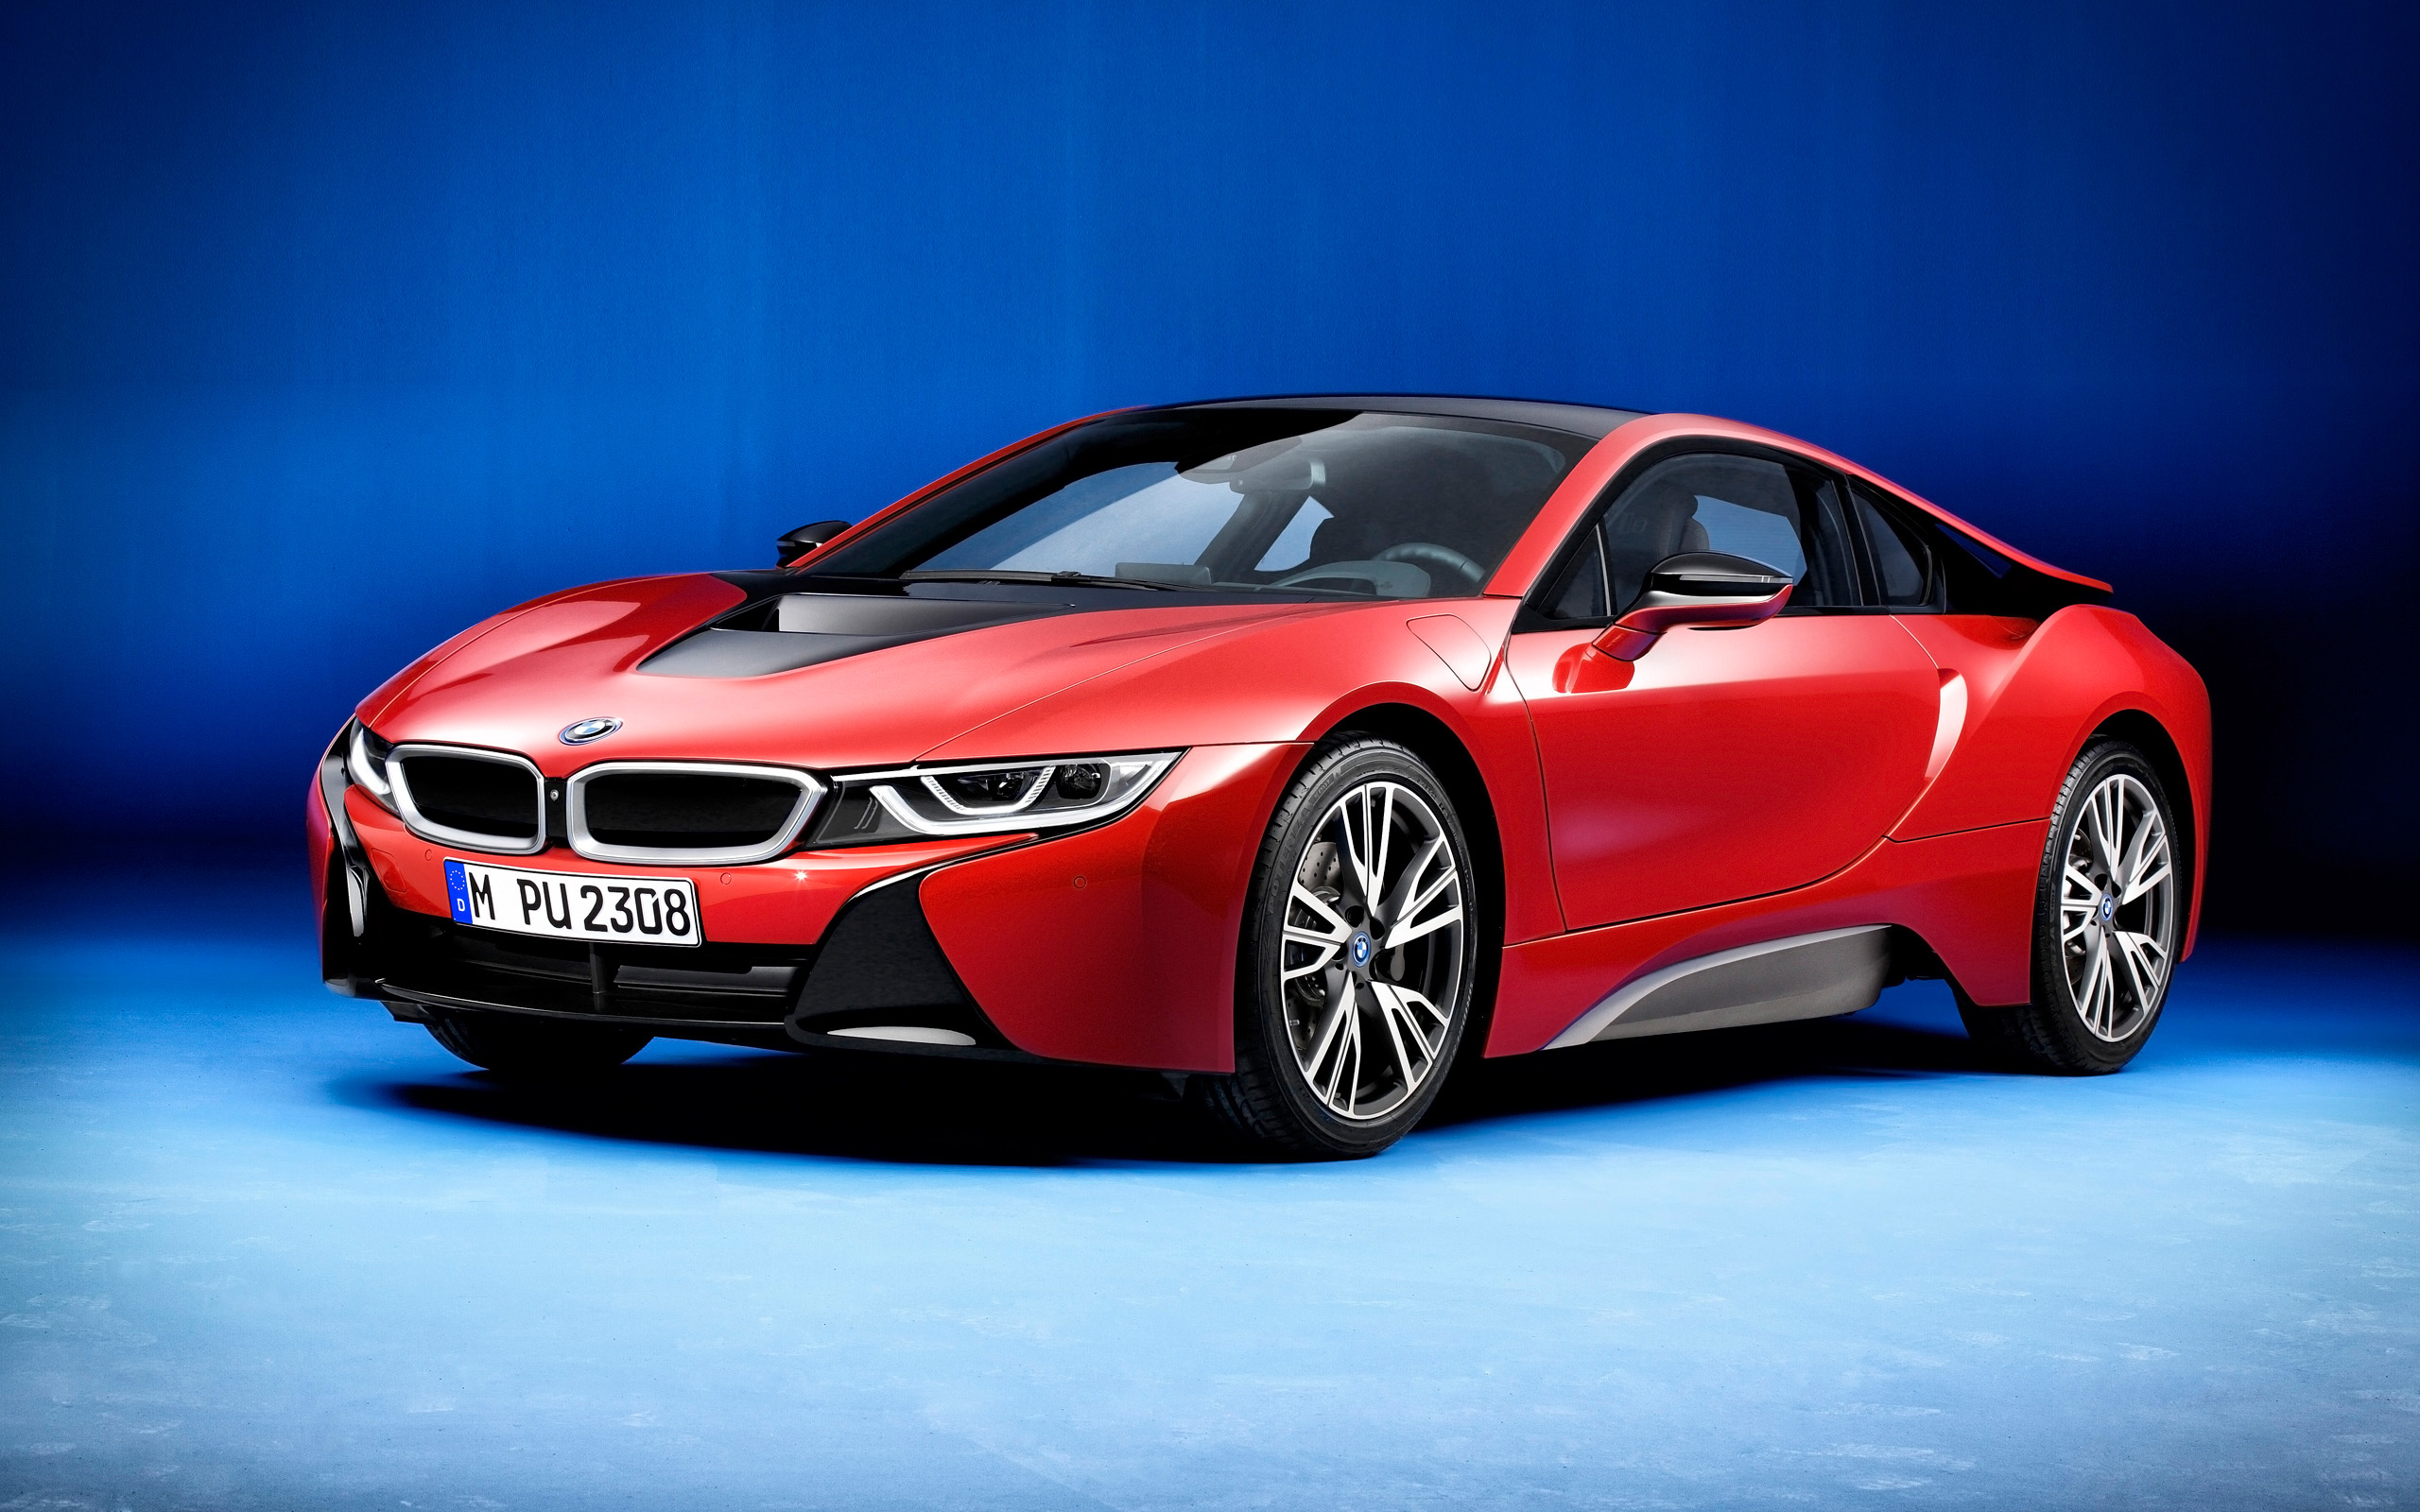 2016 Bmw I8 Protonic Red Edition Wallpaper Hd Car Wallpapers Id